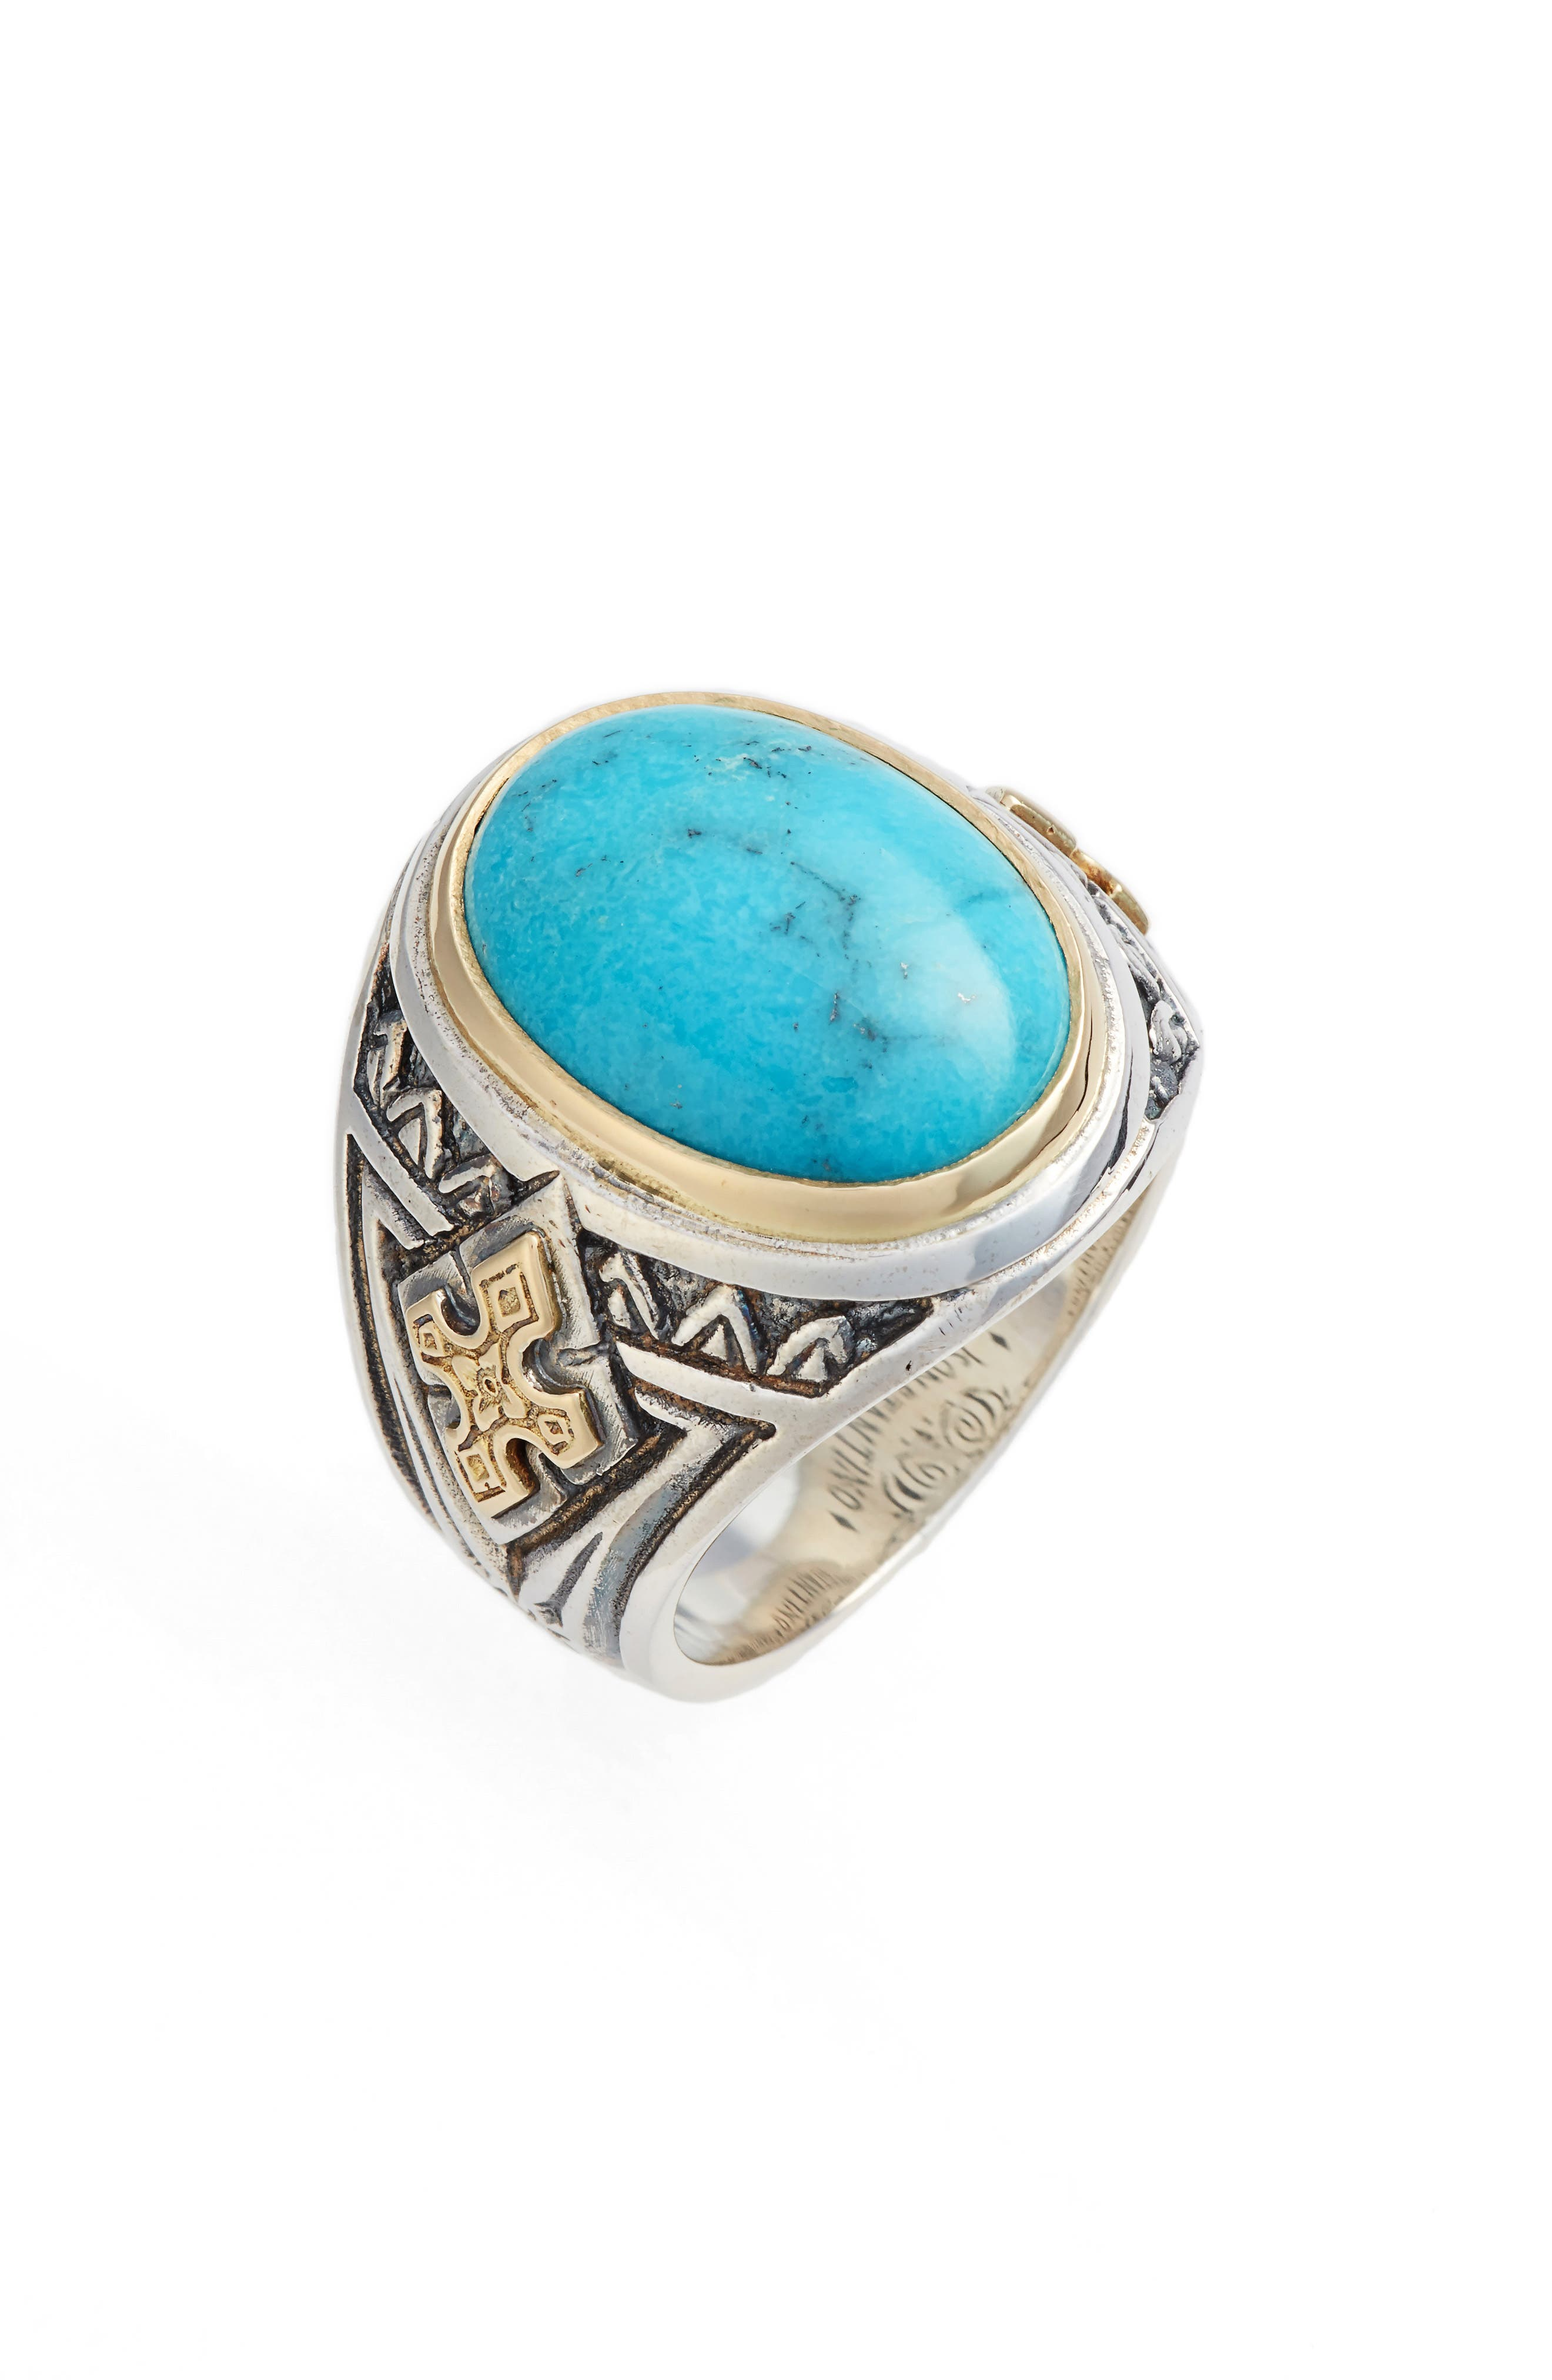 Heonos Turquoise Ring,                             Main thumbnail 1, color,                             Silver/ Gold/ Turquoise